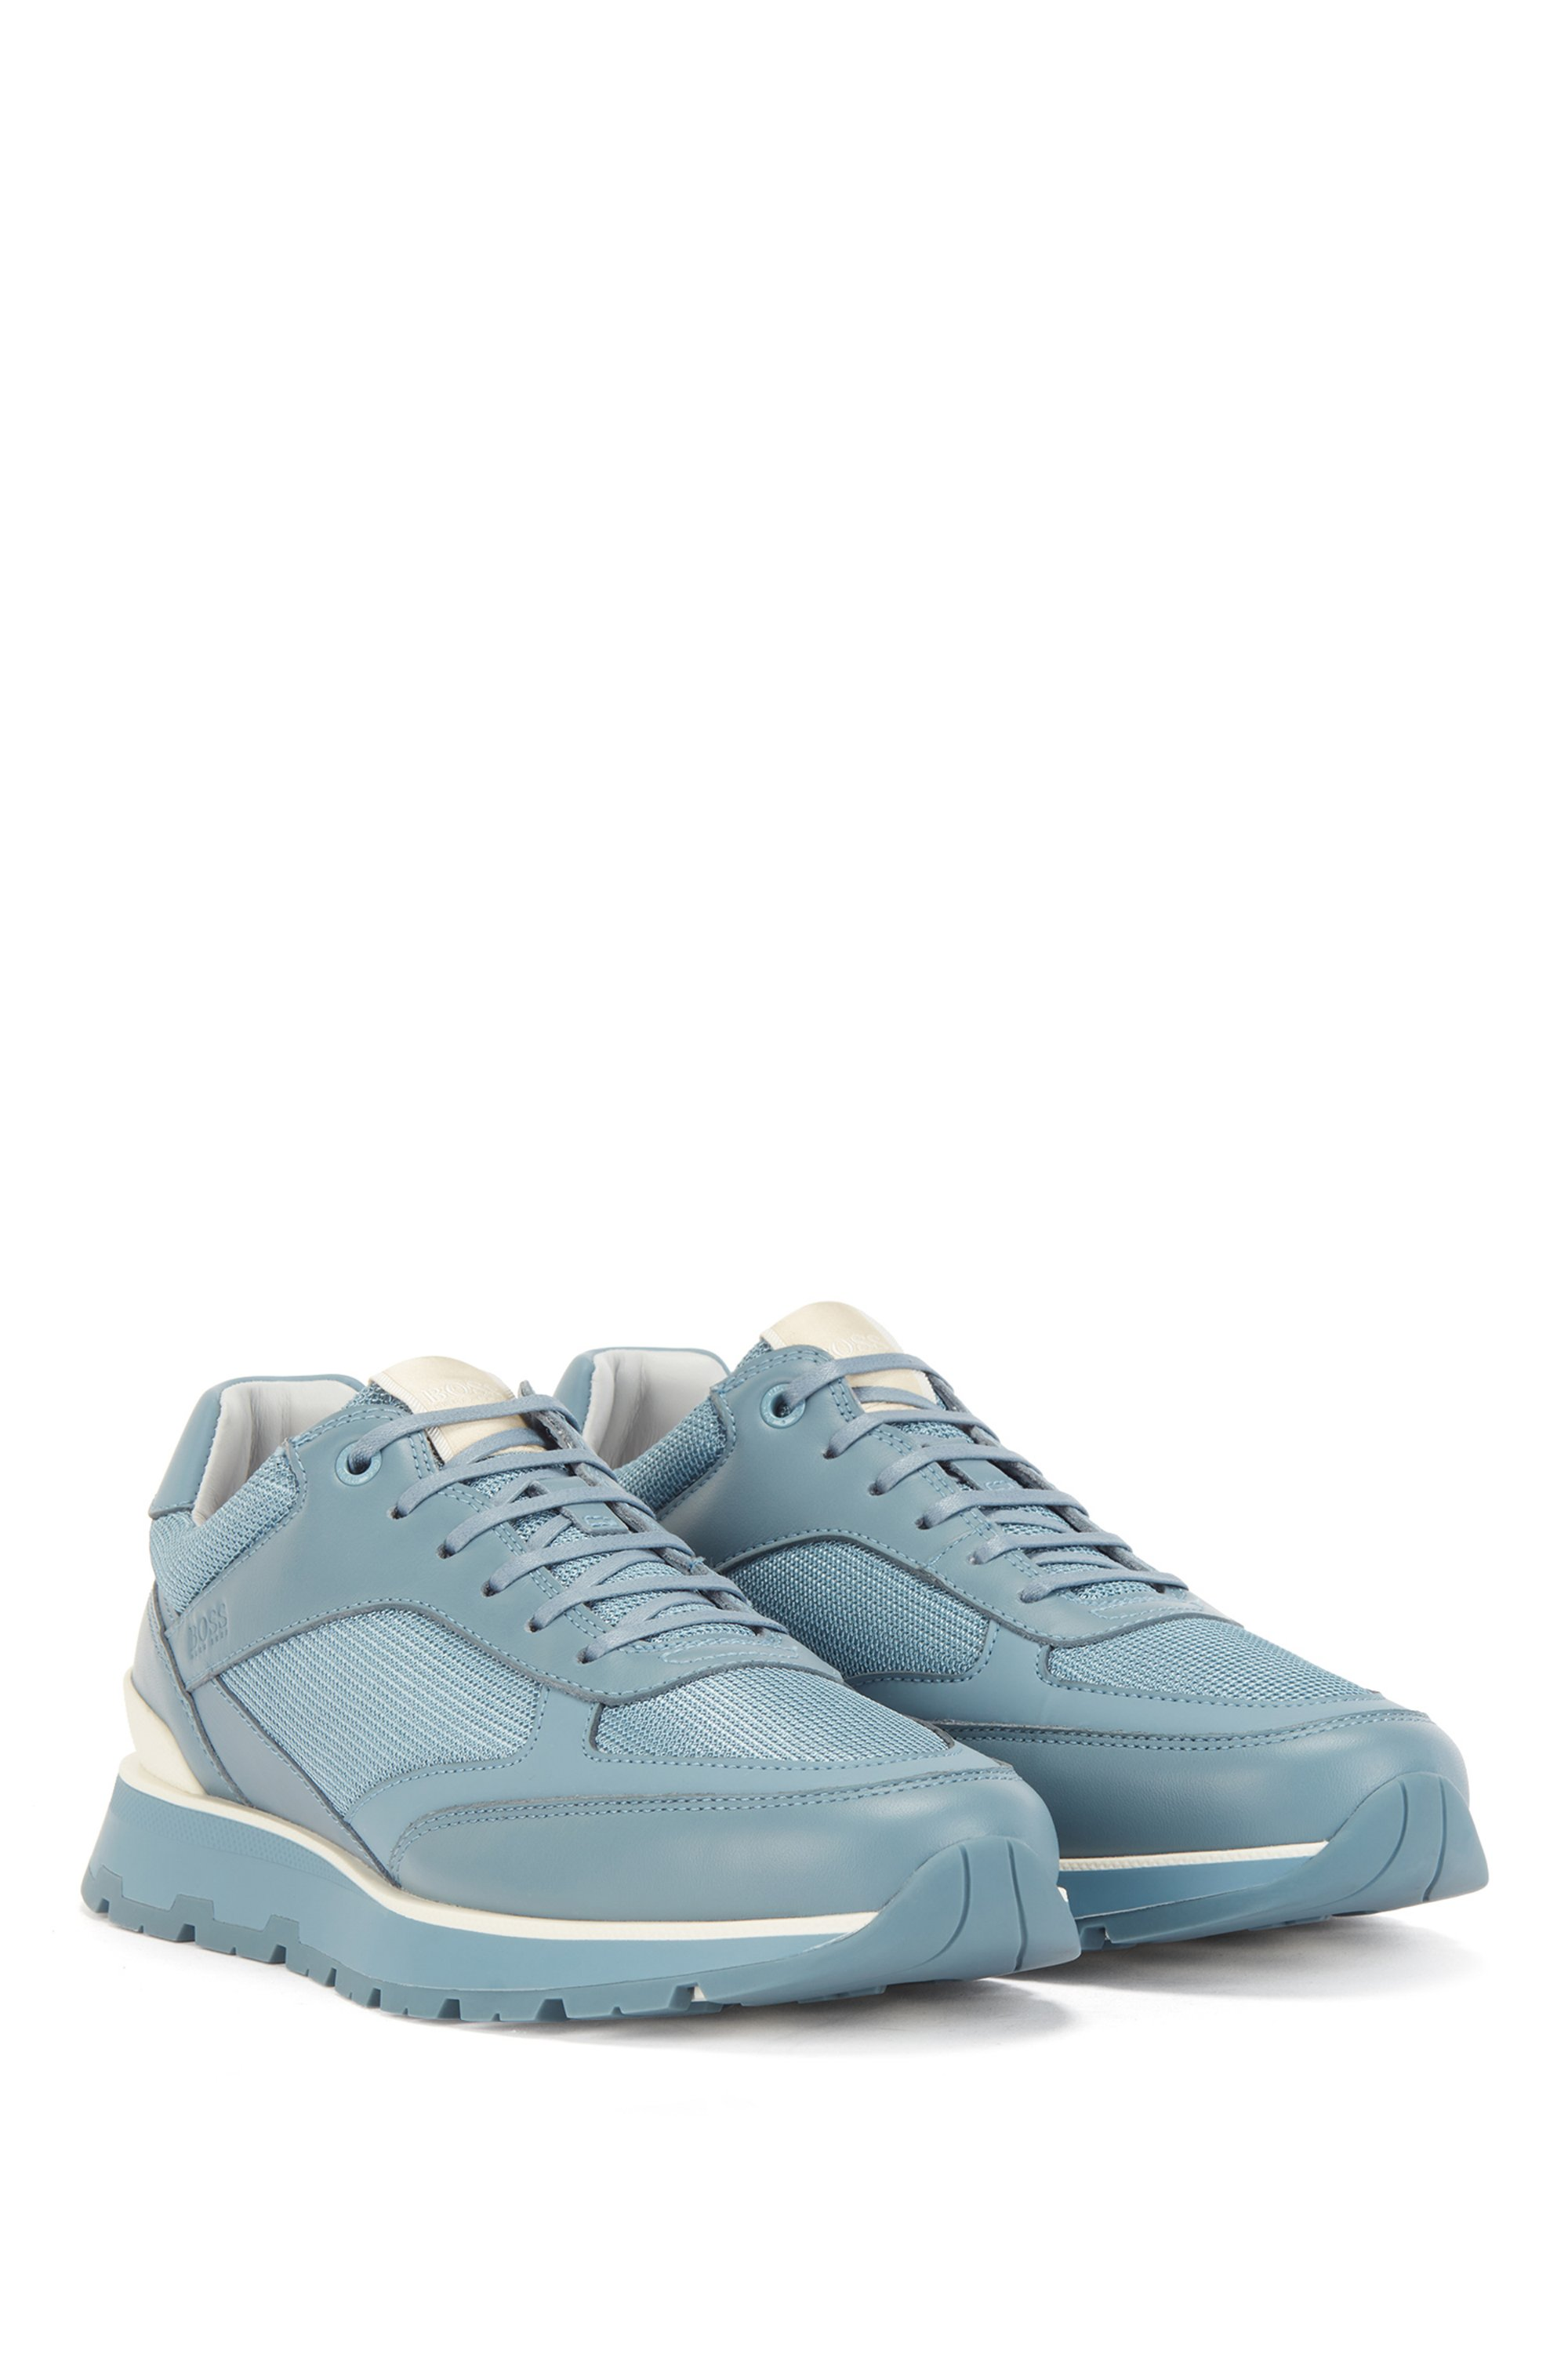 Low-top trainers in mixed materials